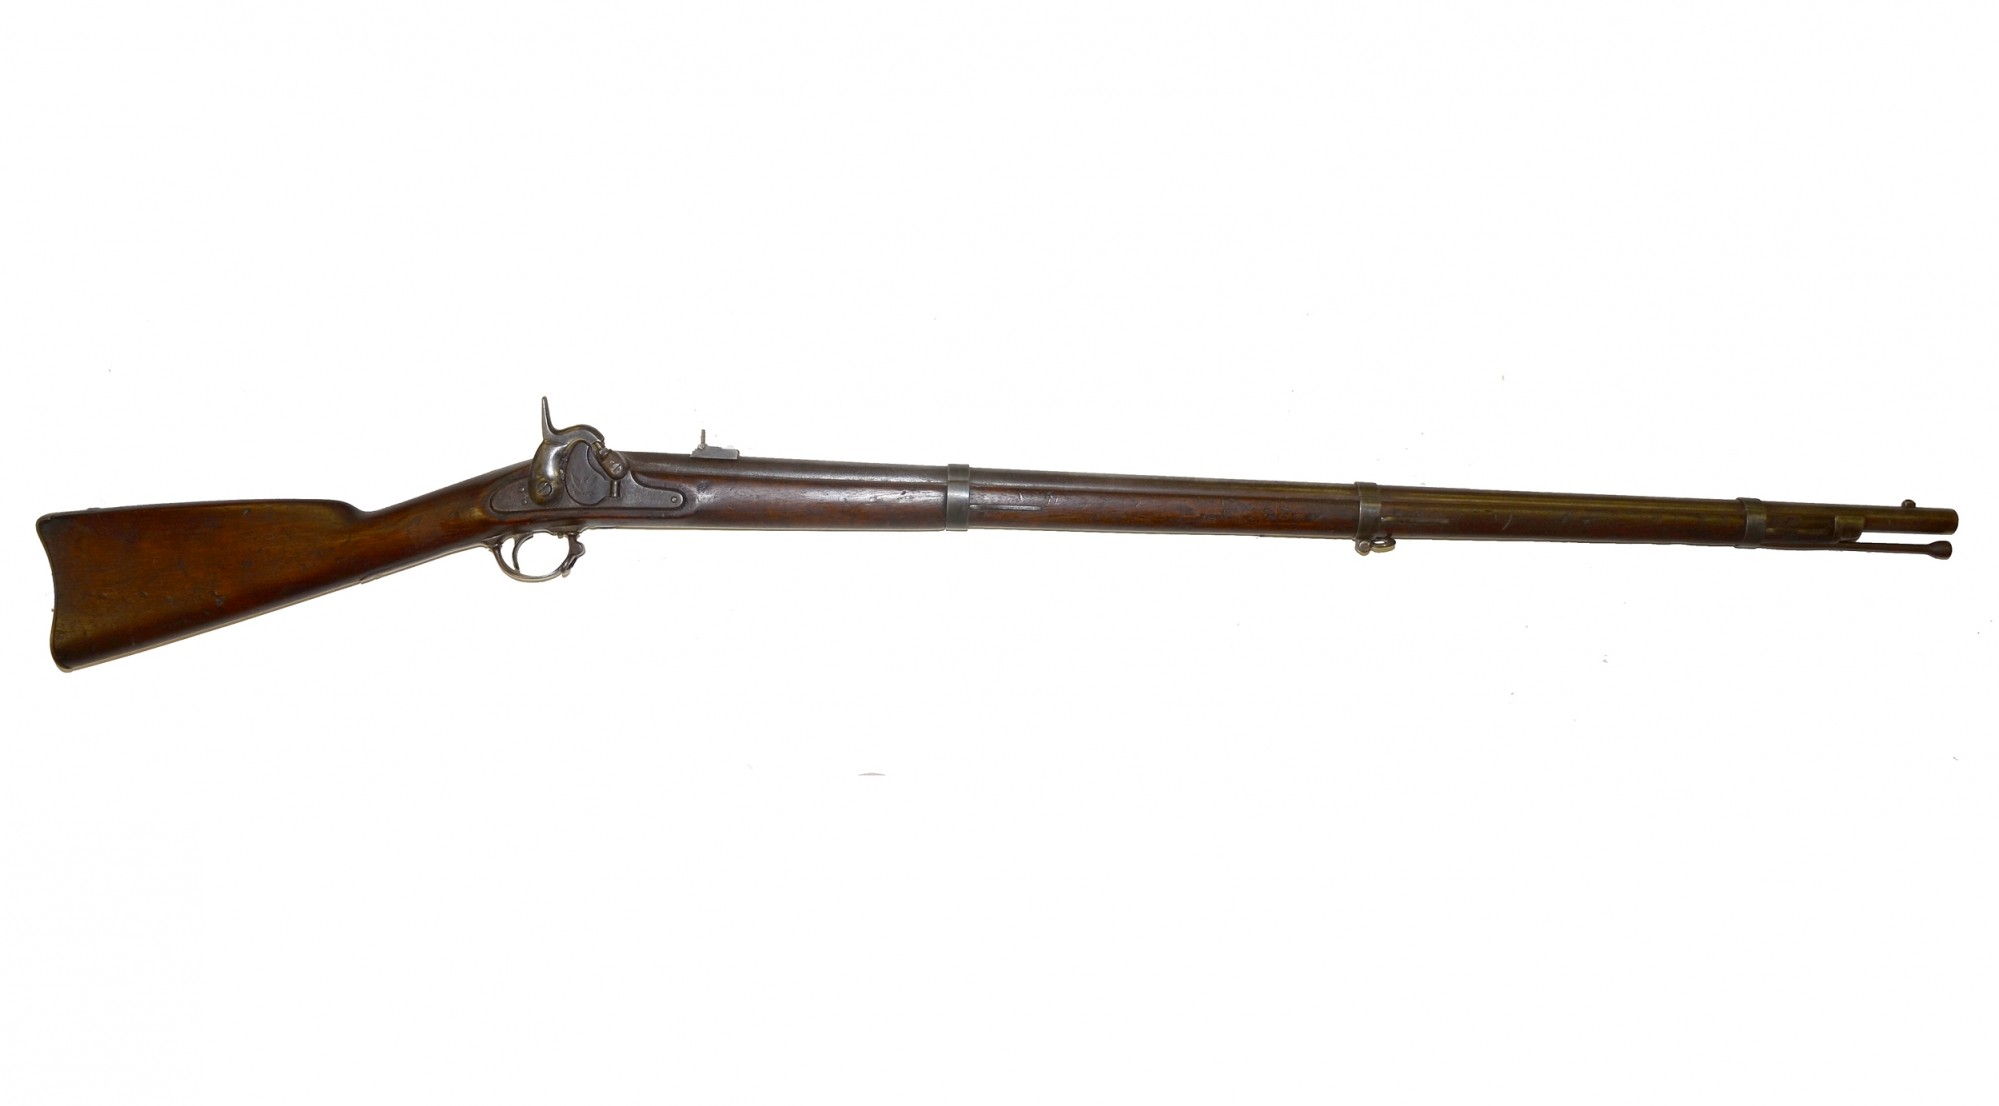 SPRINGFIELD MODEL 1855 US PERCUSSION RIFLE-MUSKET DATED 1860